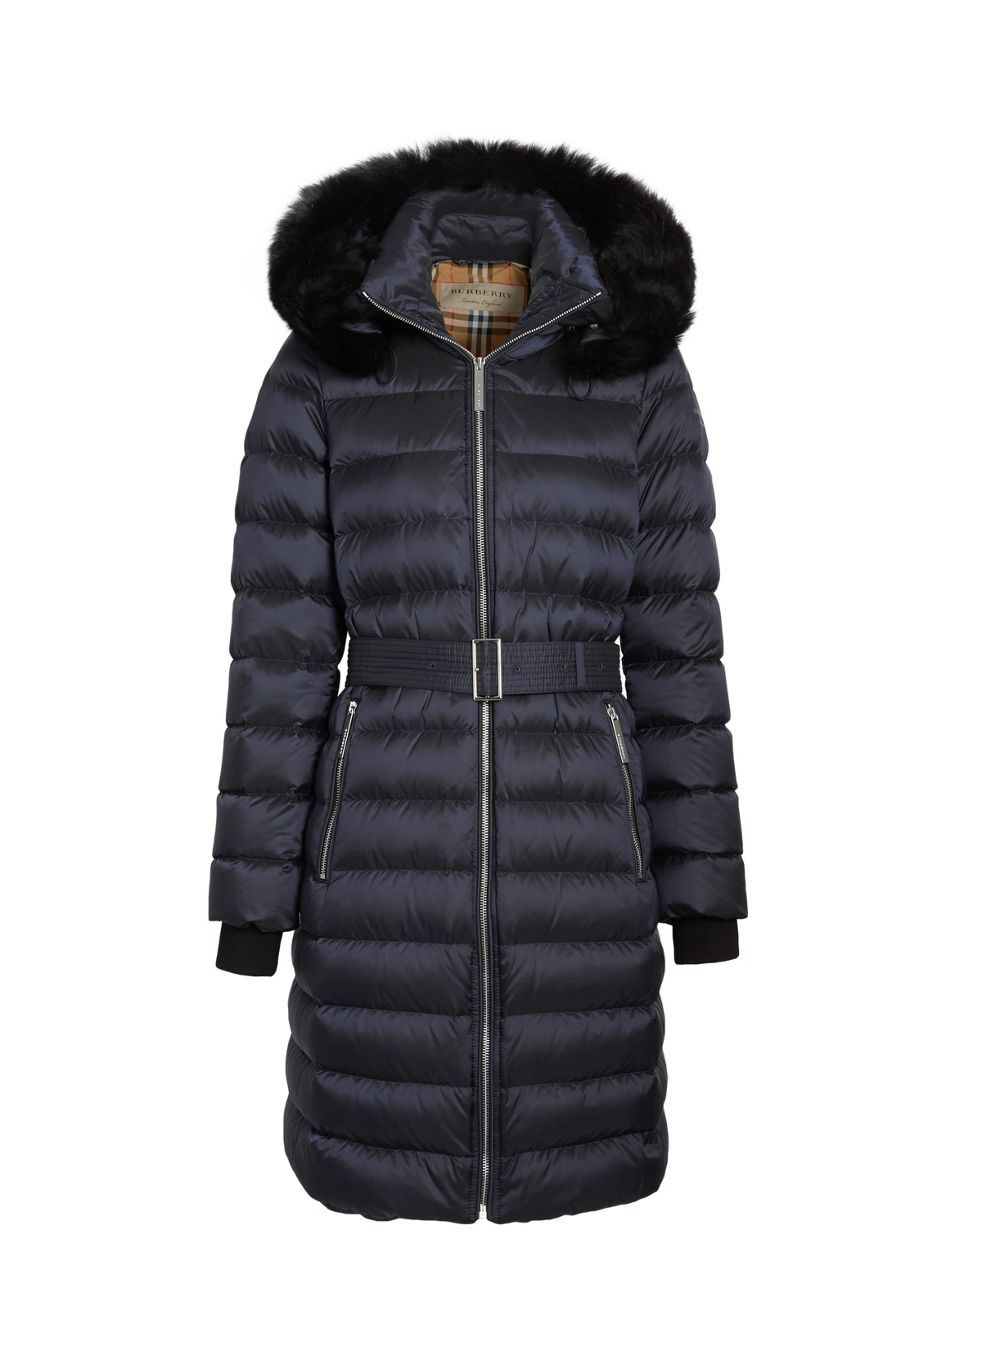 Burberry Detachable Shearling Trim Down Filled Puffer Coat